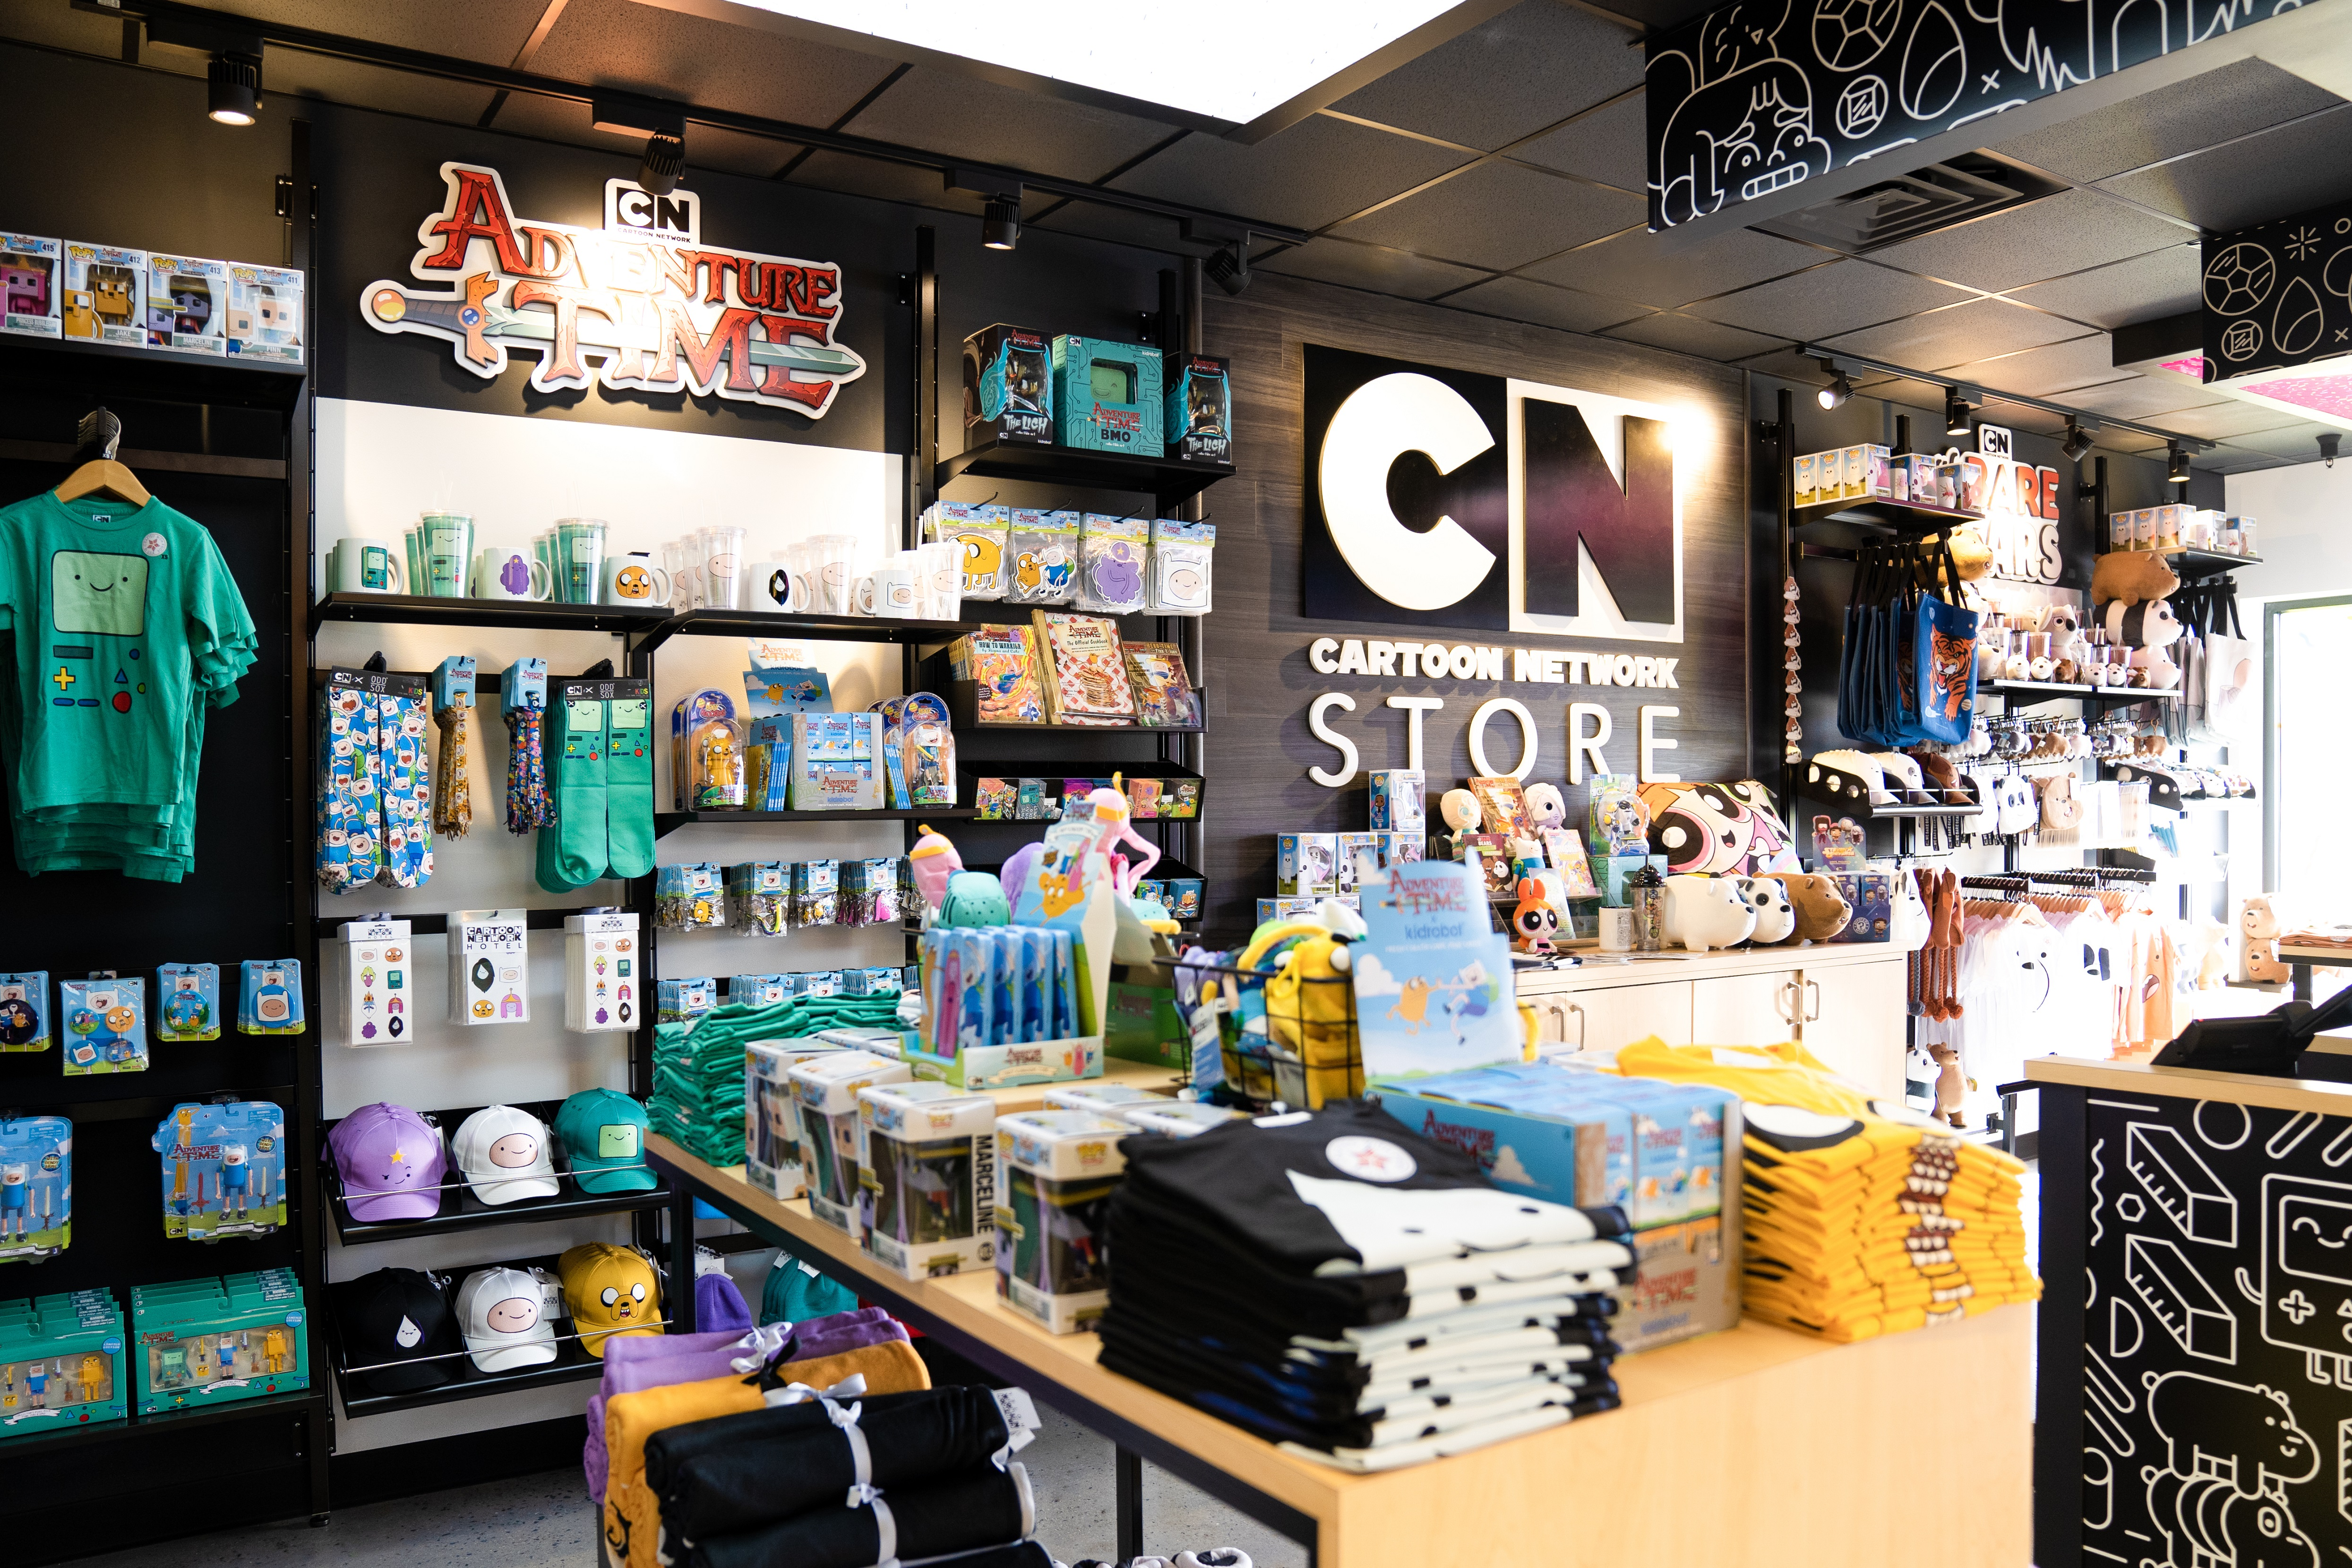 The Cartoon Network Hotel Store side shot